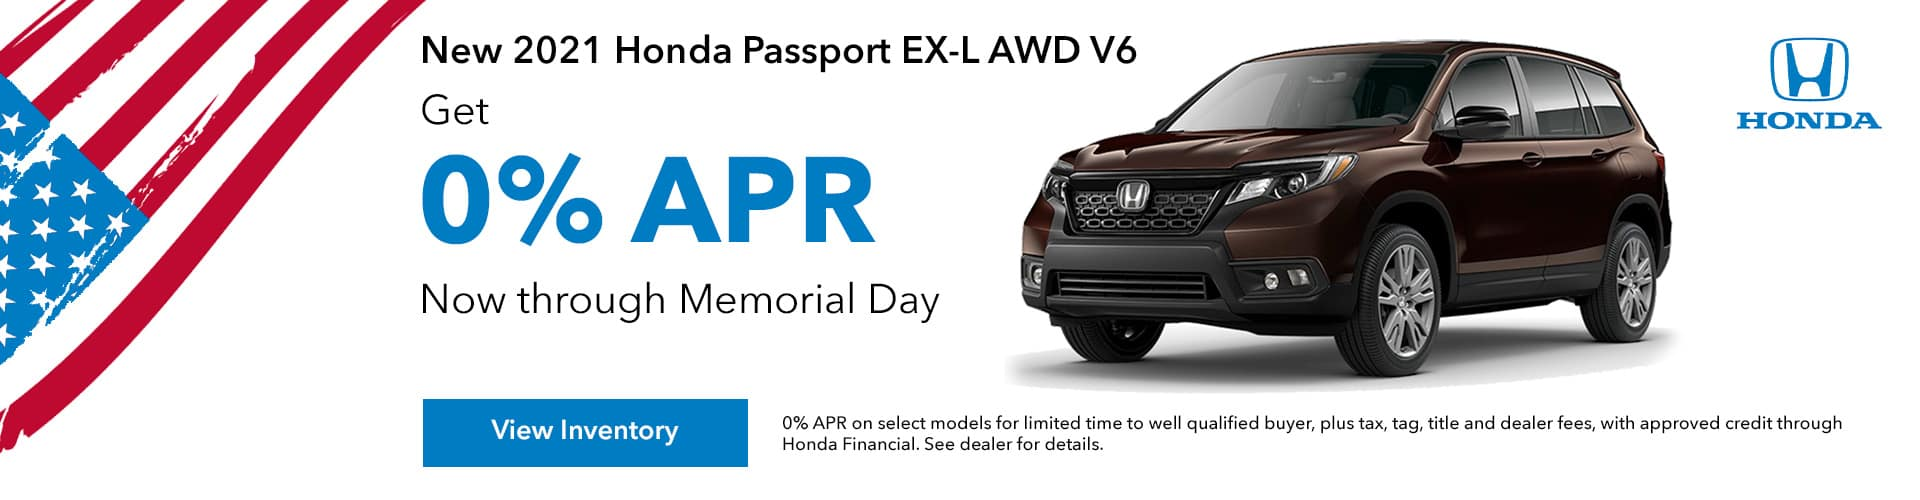 New 2021 Honda Passport 0% APR, Get 0% APR For up to 60 Months